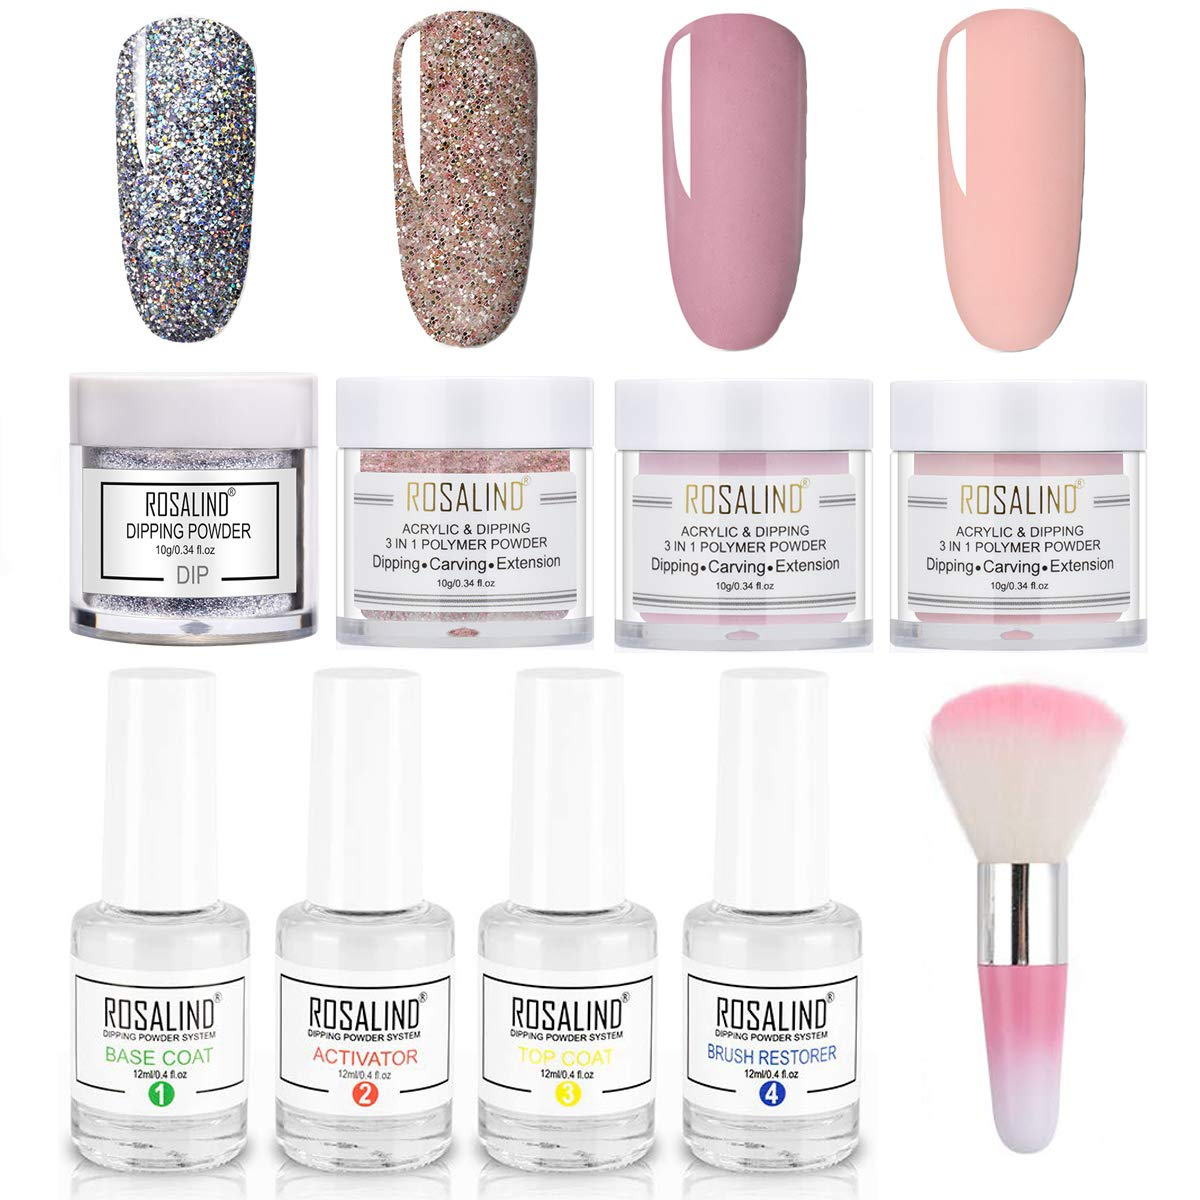 Nail Dip Powder Starter Kits 4 Colors Acrylic Nails Powders French Nail Manicure Without Uv Lamp Cured Art Design